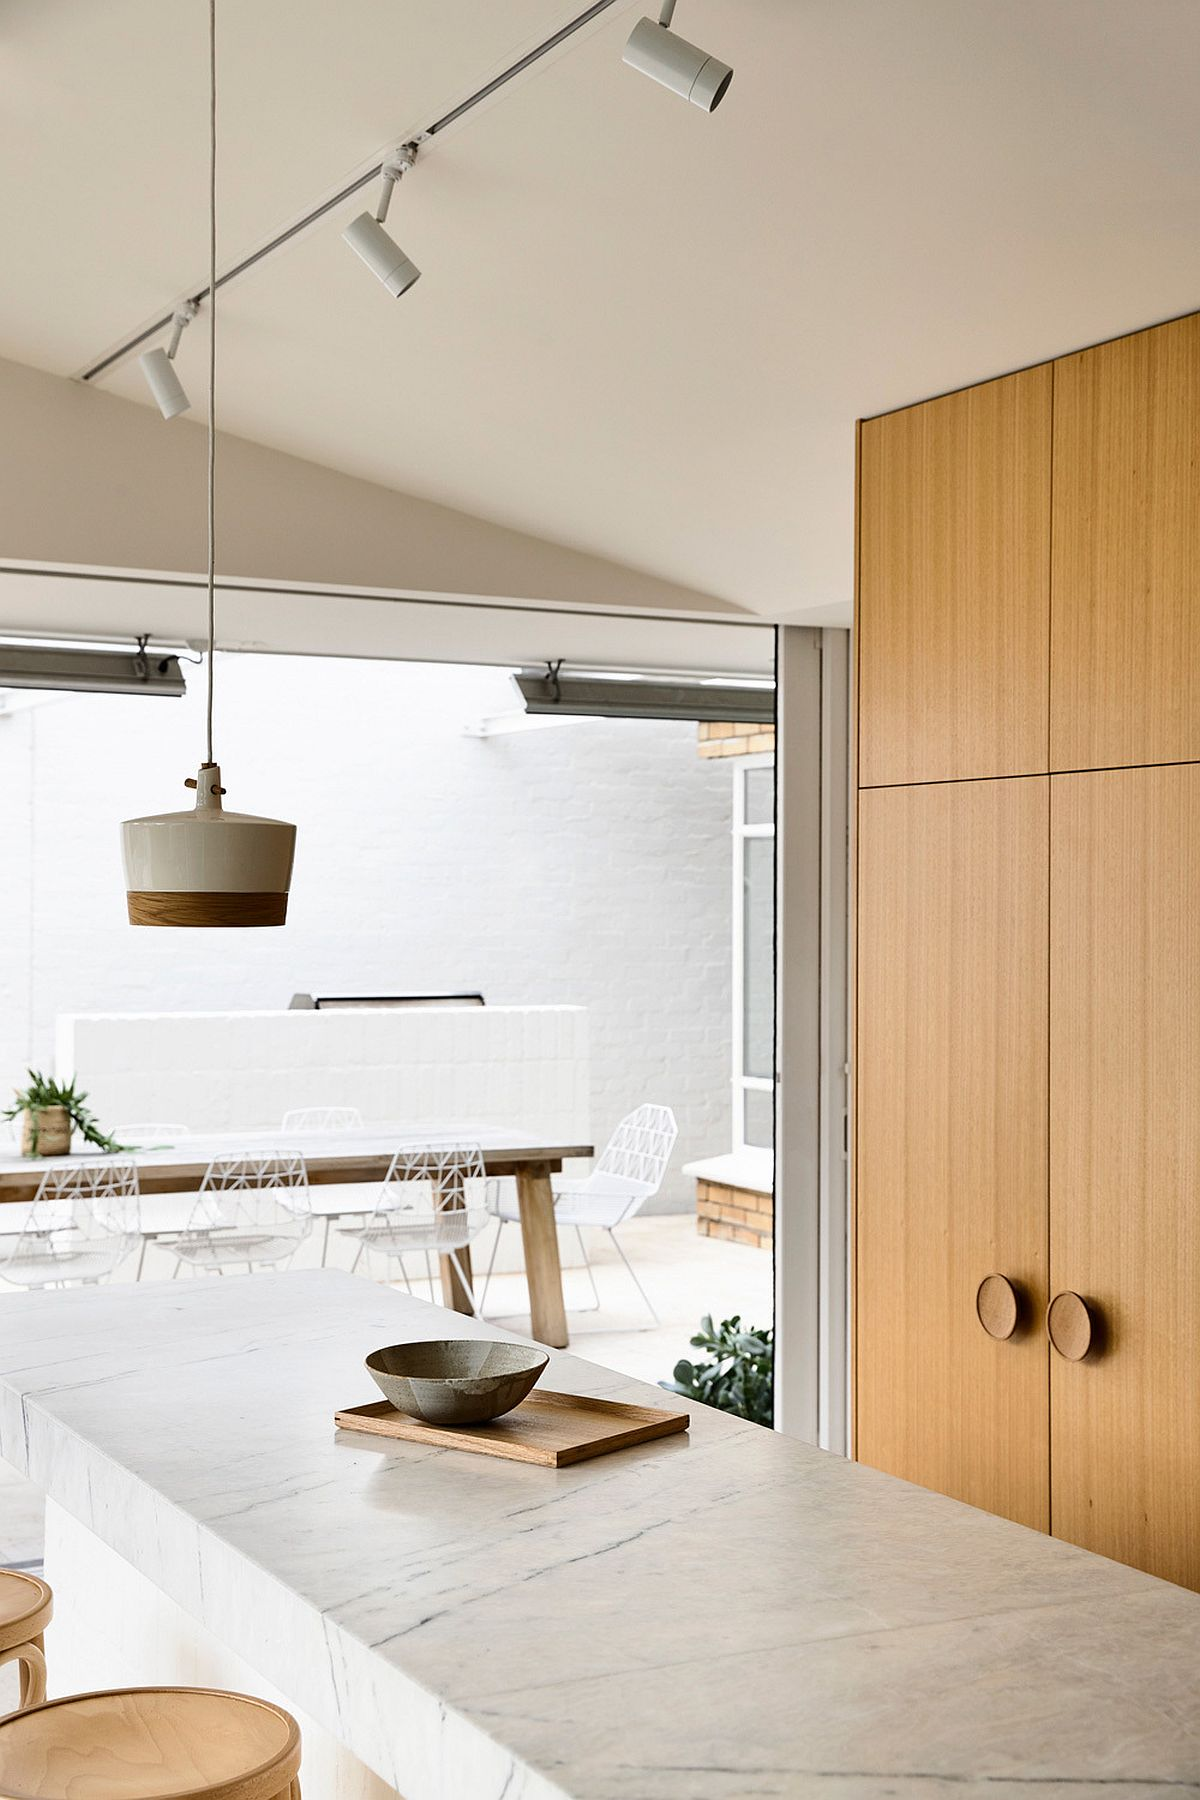 Modern minimal extension of the post-war era Melbourne home